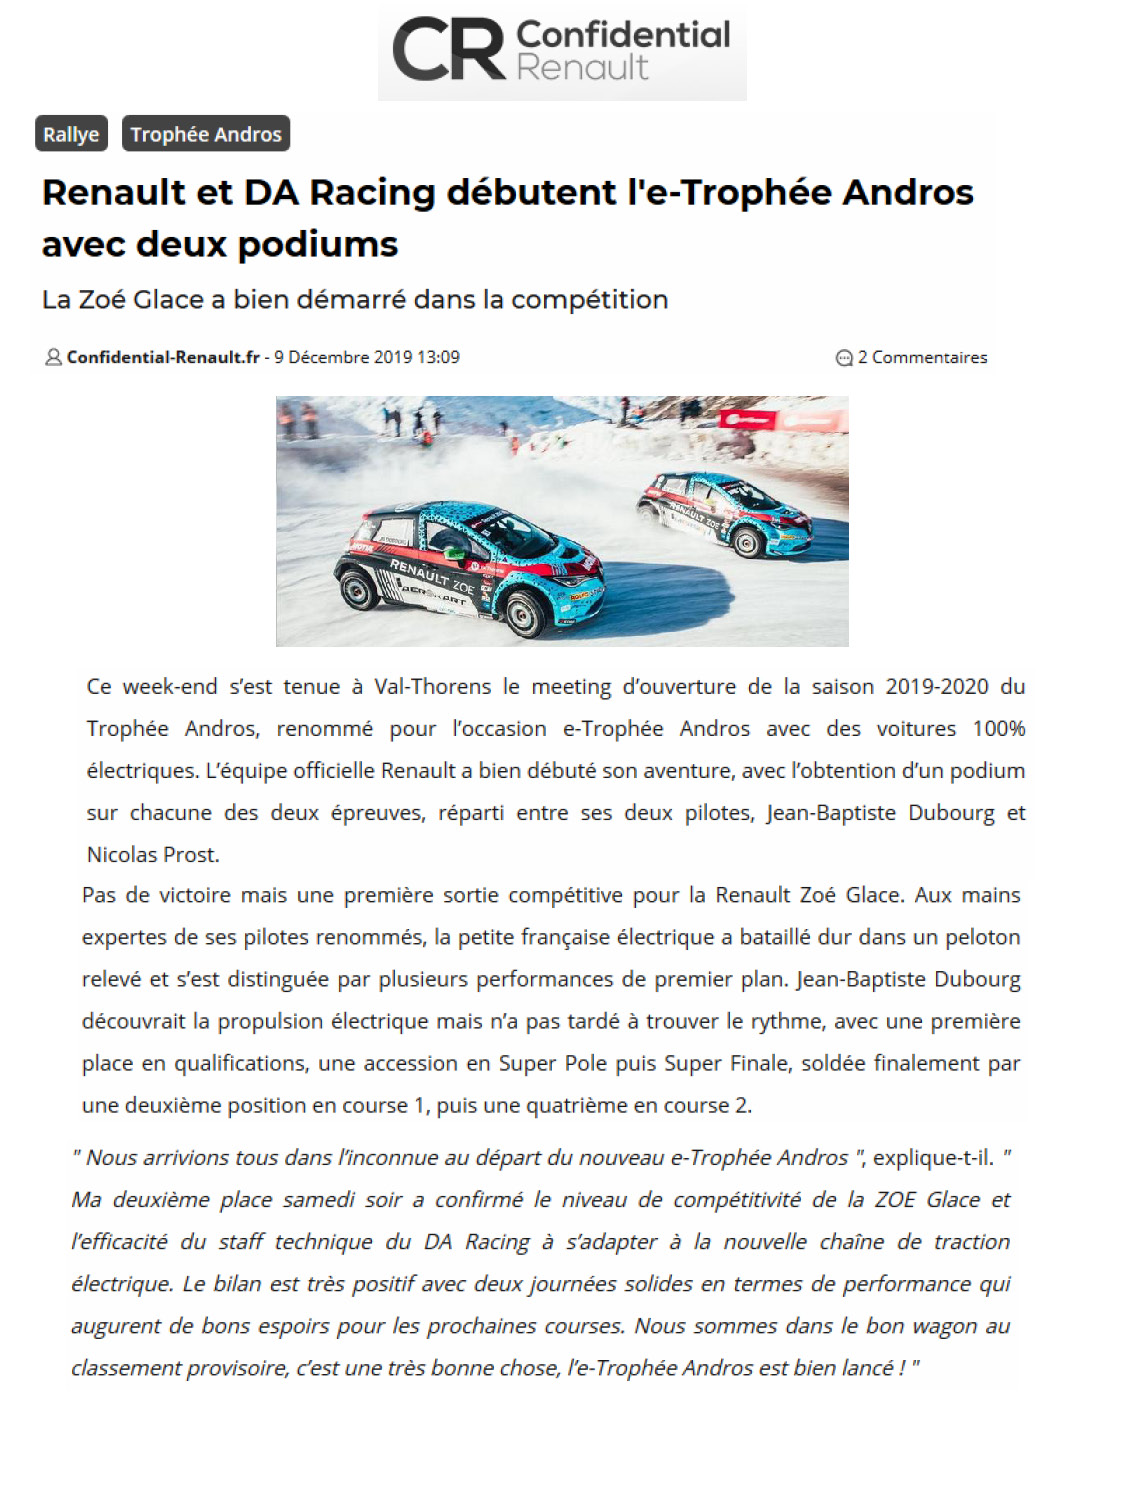 2019 12 09 ConfidentialRenault.fr Page 1